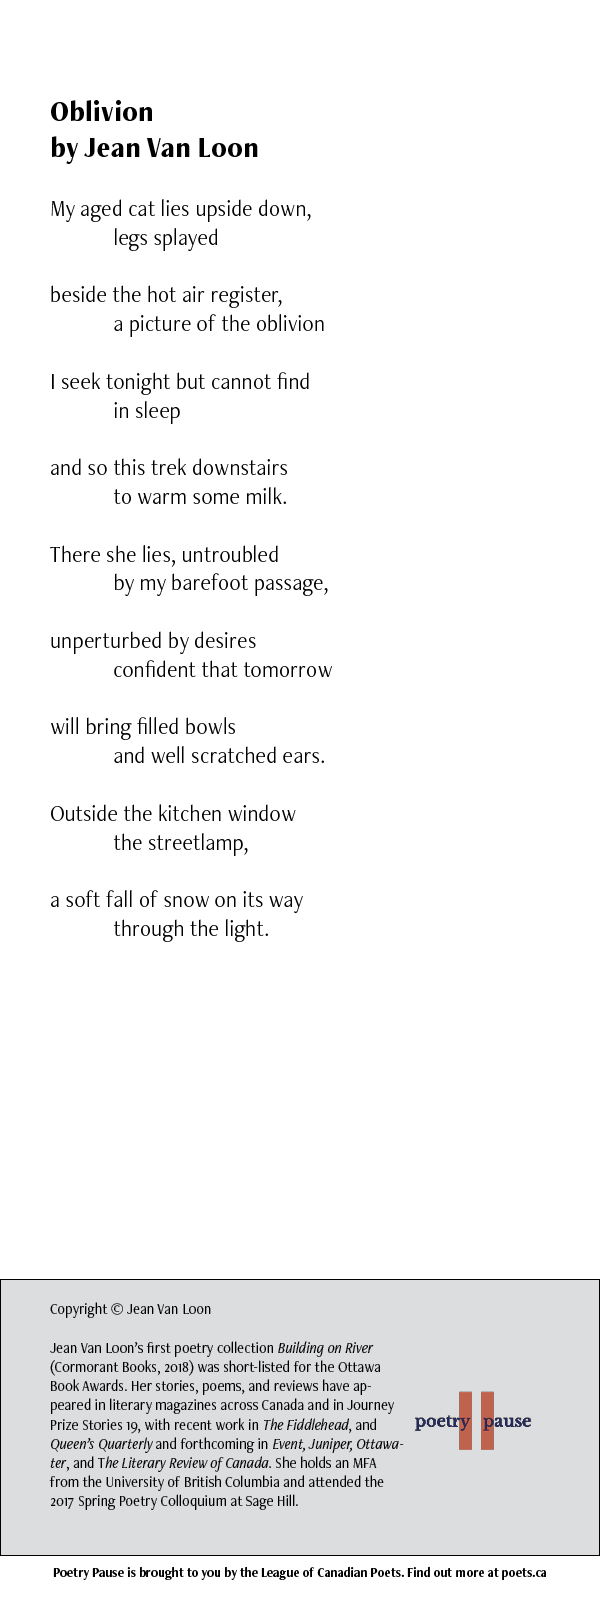 Poem title: Oblivion Poet name: Jean Van Loon Poem: My aged cat lies upside down, legs splayed beside the hot air register, a picture of the oblivion I seek tonight but cannot find in sleep and so this trek downstairs to warm some milk. There she lies, untroubled by my barefoot passage, unperturbed by desires confident that tomorrow will bring filled bowls and well scratched ears. Outside the kitchen window the streetlamp, a soft fall of snow on its way through the light. End of Poem. Credits: Copyright © Jean Van Loon Jean Van Loon's first poetry collection Building on River (Cormorant Books, 2018) was short-listed for the Ottawa Book Awards. Her stories, poems, and reviews have appeared in literary magazines across Canada and in Journey Prize Stories 19, with recent work in The Fiddlehead, and Queen's Quarterly and forthcoming in Event, Juniper, Ottawater, and The Literary Review of Canada. She holds an MFA from the University of British Columbia and attended the 2017 Spring Poetry Colloquium at Sage Hill.